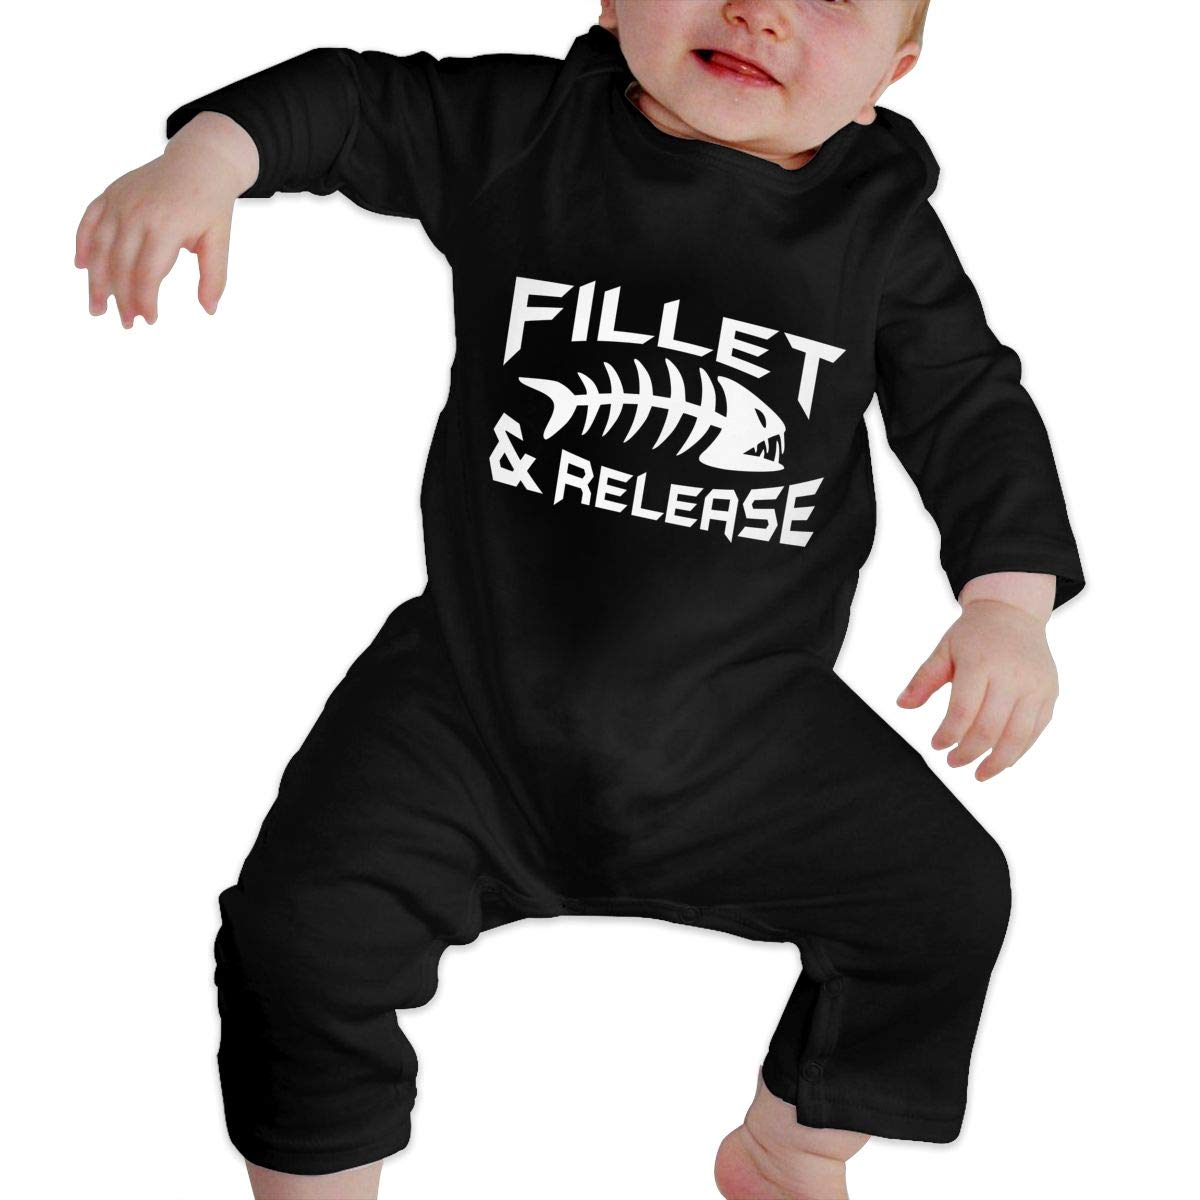 Fillet and Release Newborn Baby Boy Girl Romper Jumpsuit Long Sleeve Bodysuit Overalls Outfits Clothes